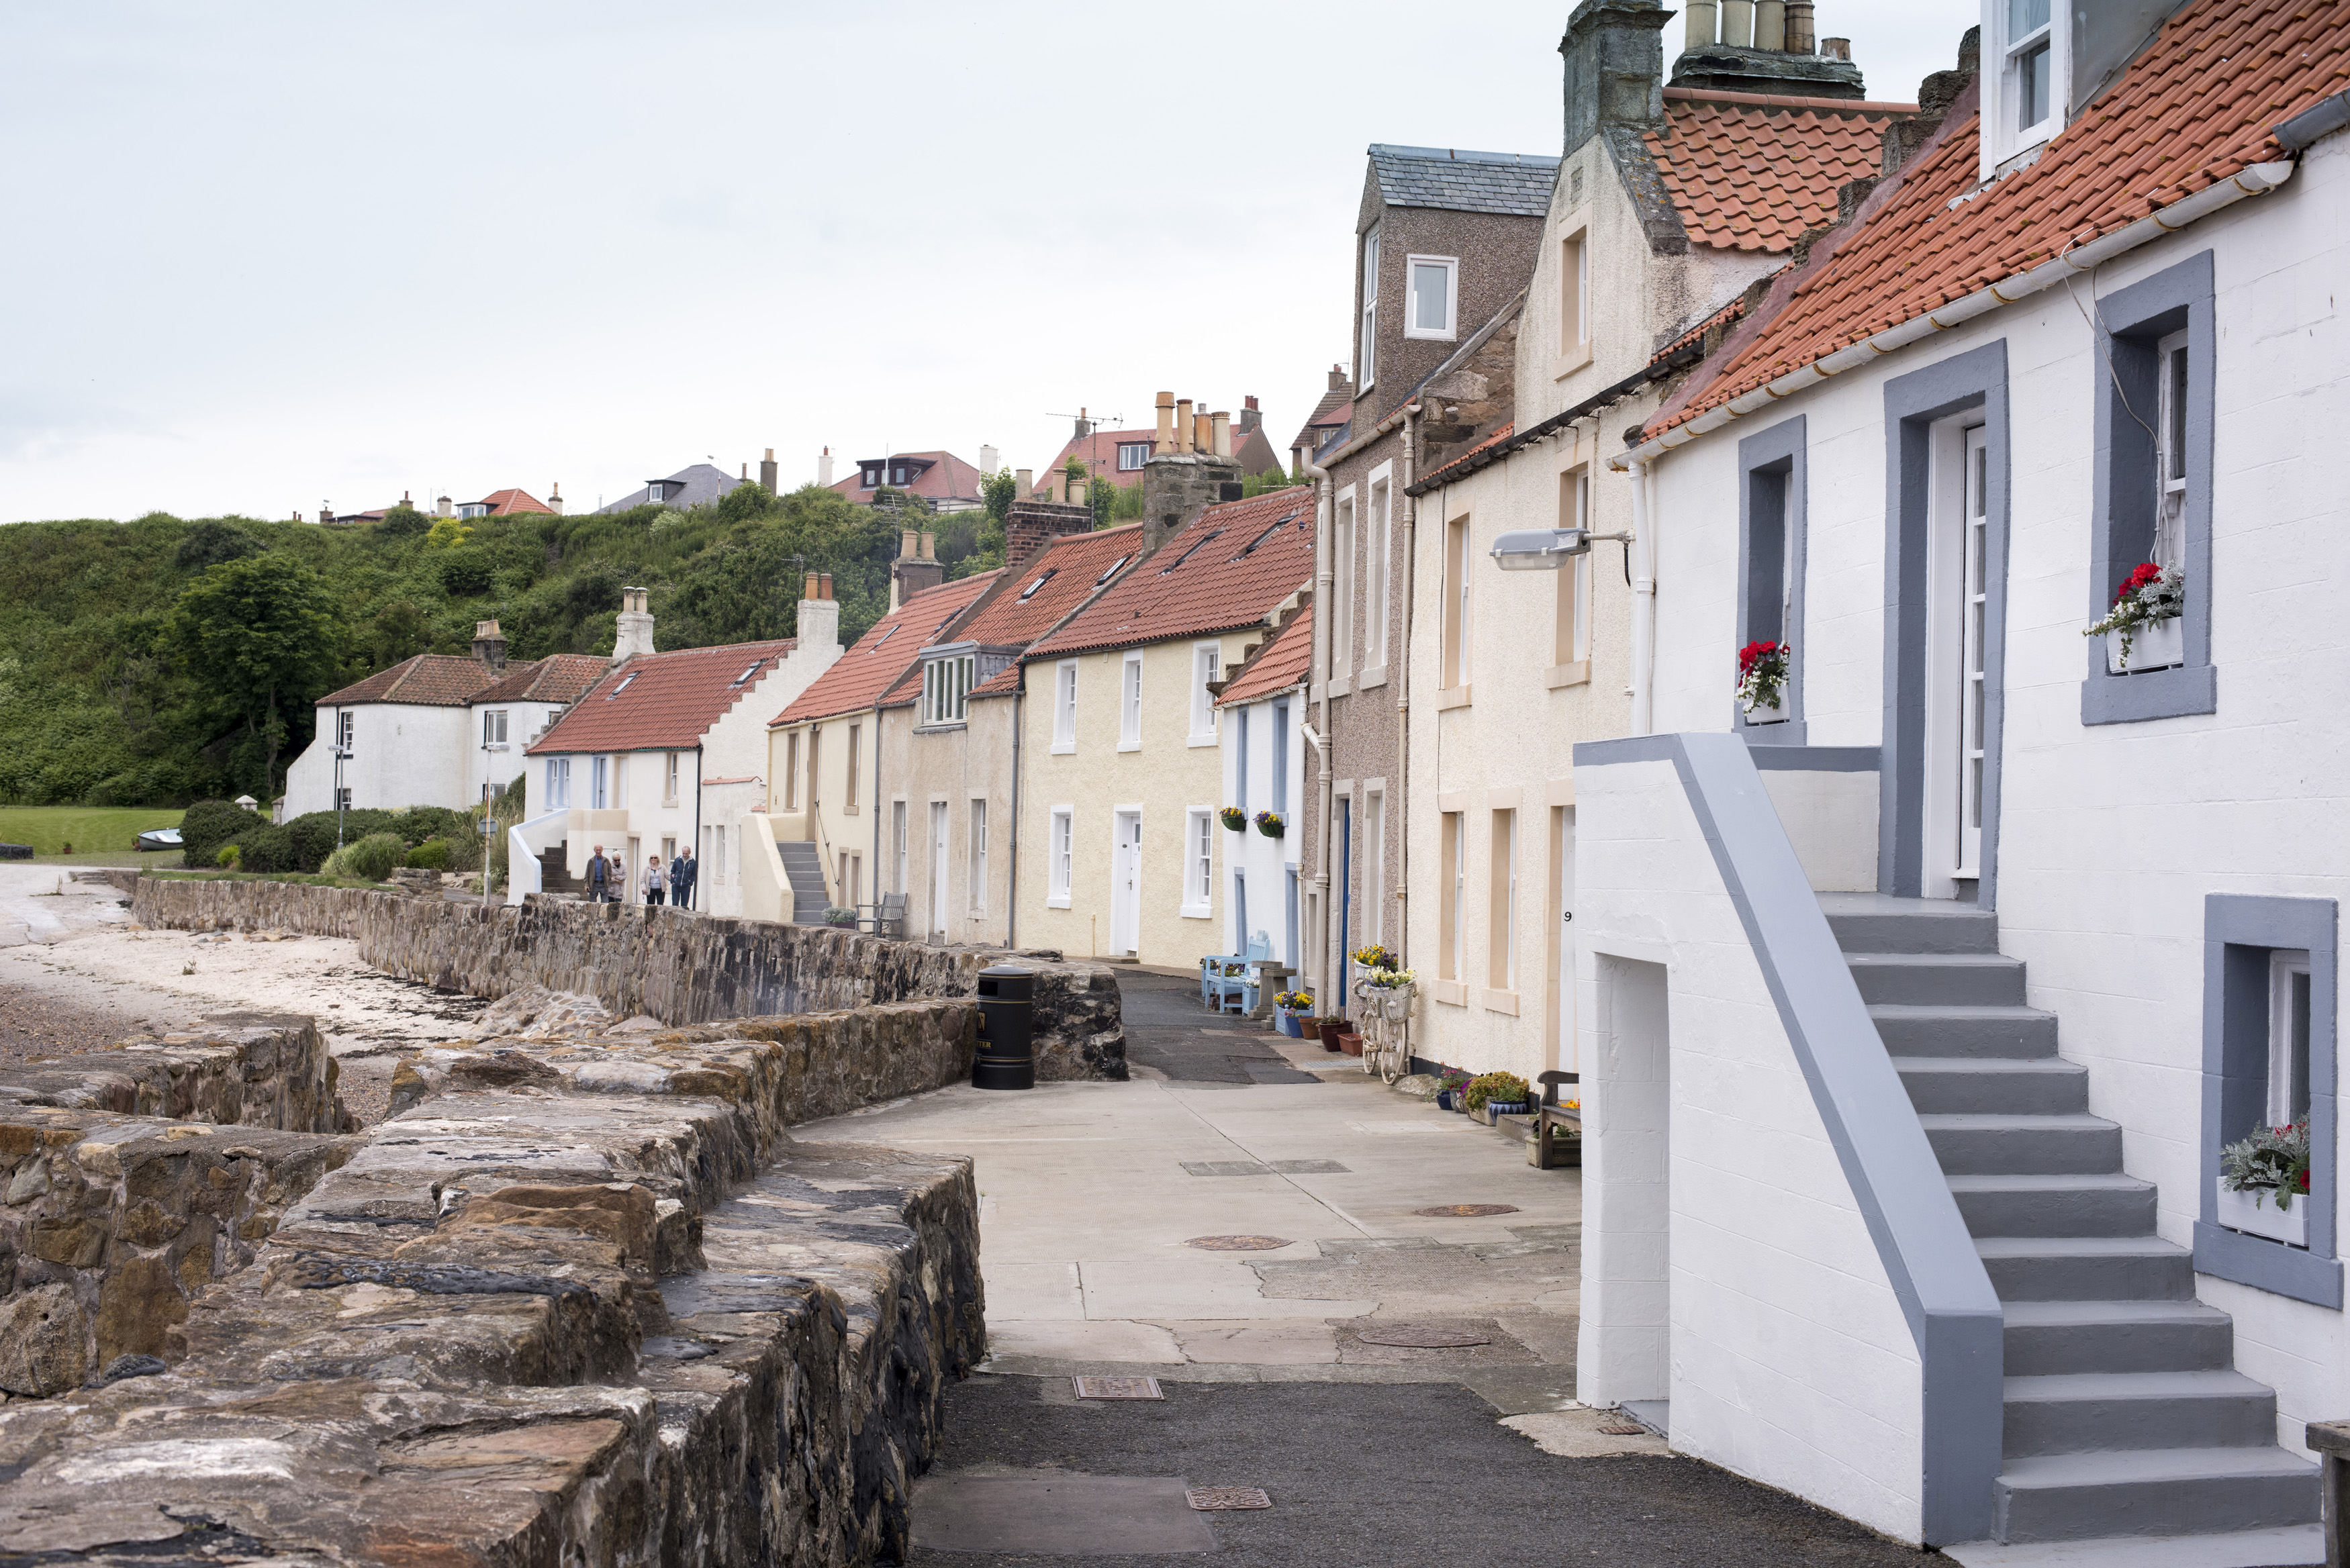 Large boulder seawall in front of historic old beach area houses at Pittenweem, Scotland